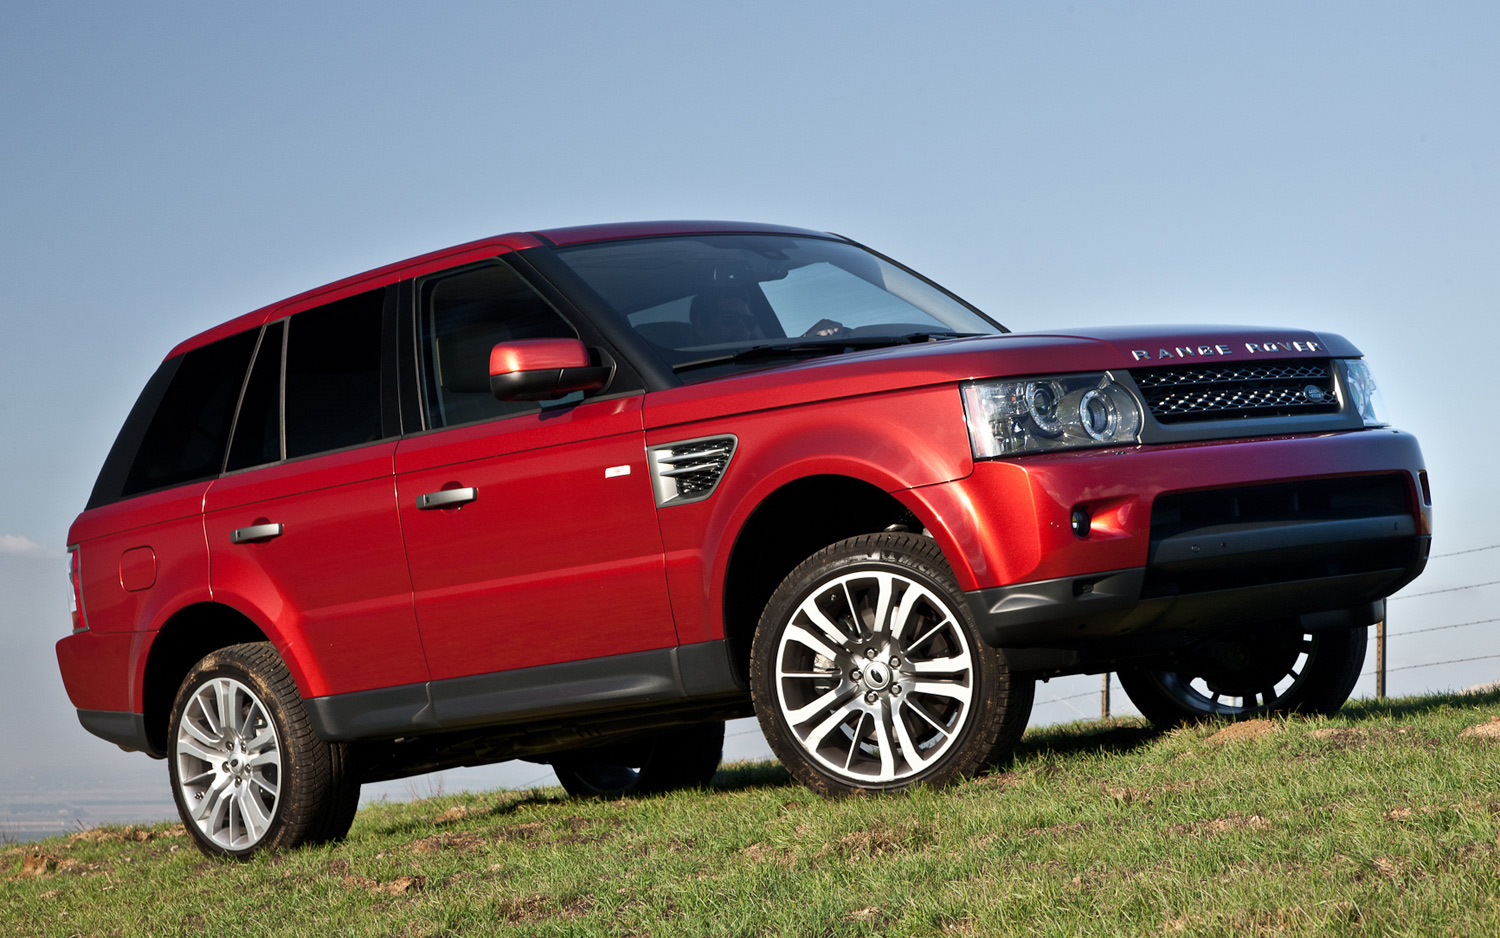 topworldauto photos of land rover range rover sport hse photo galleries. Black Bedroom Furniture Sets. Home Design Ideas